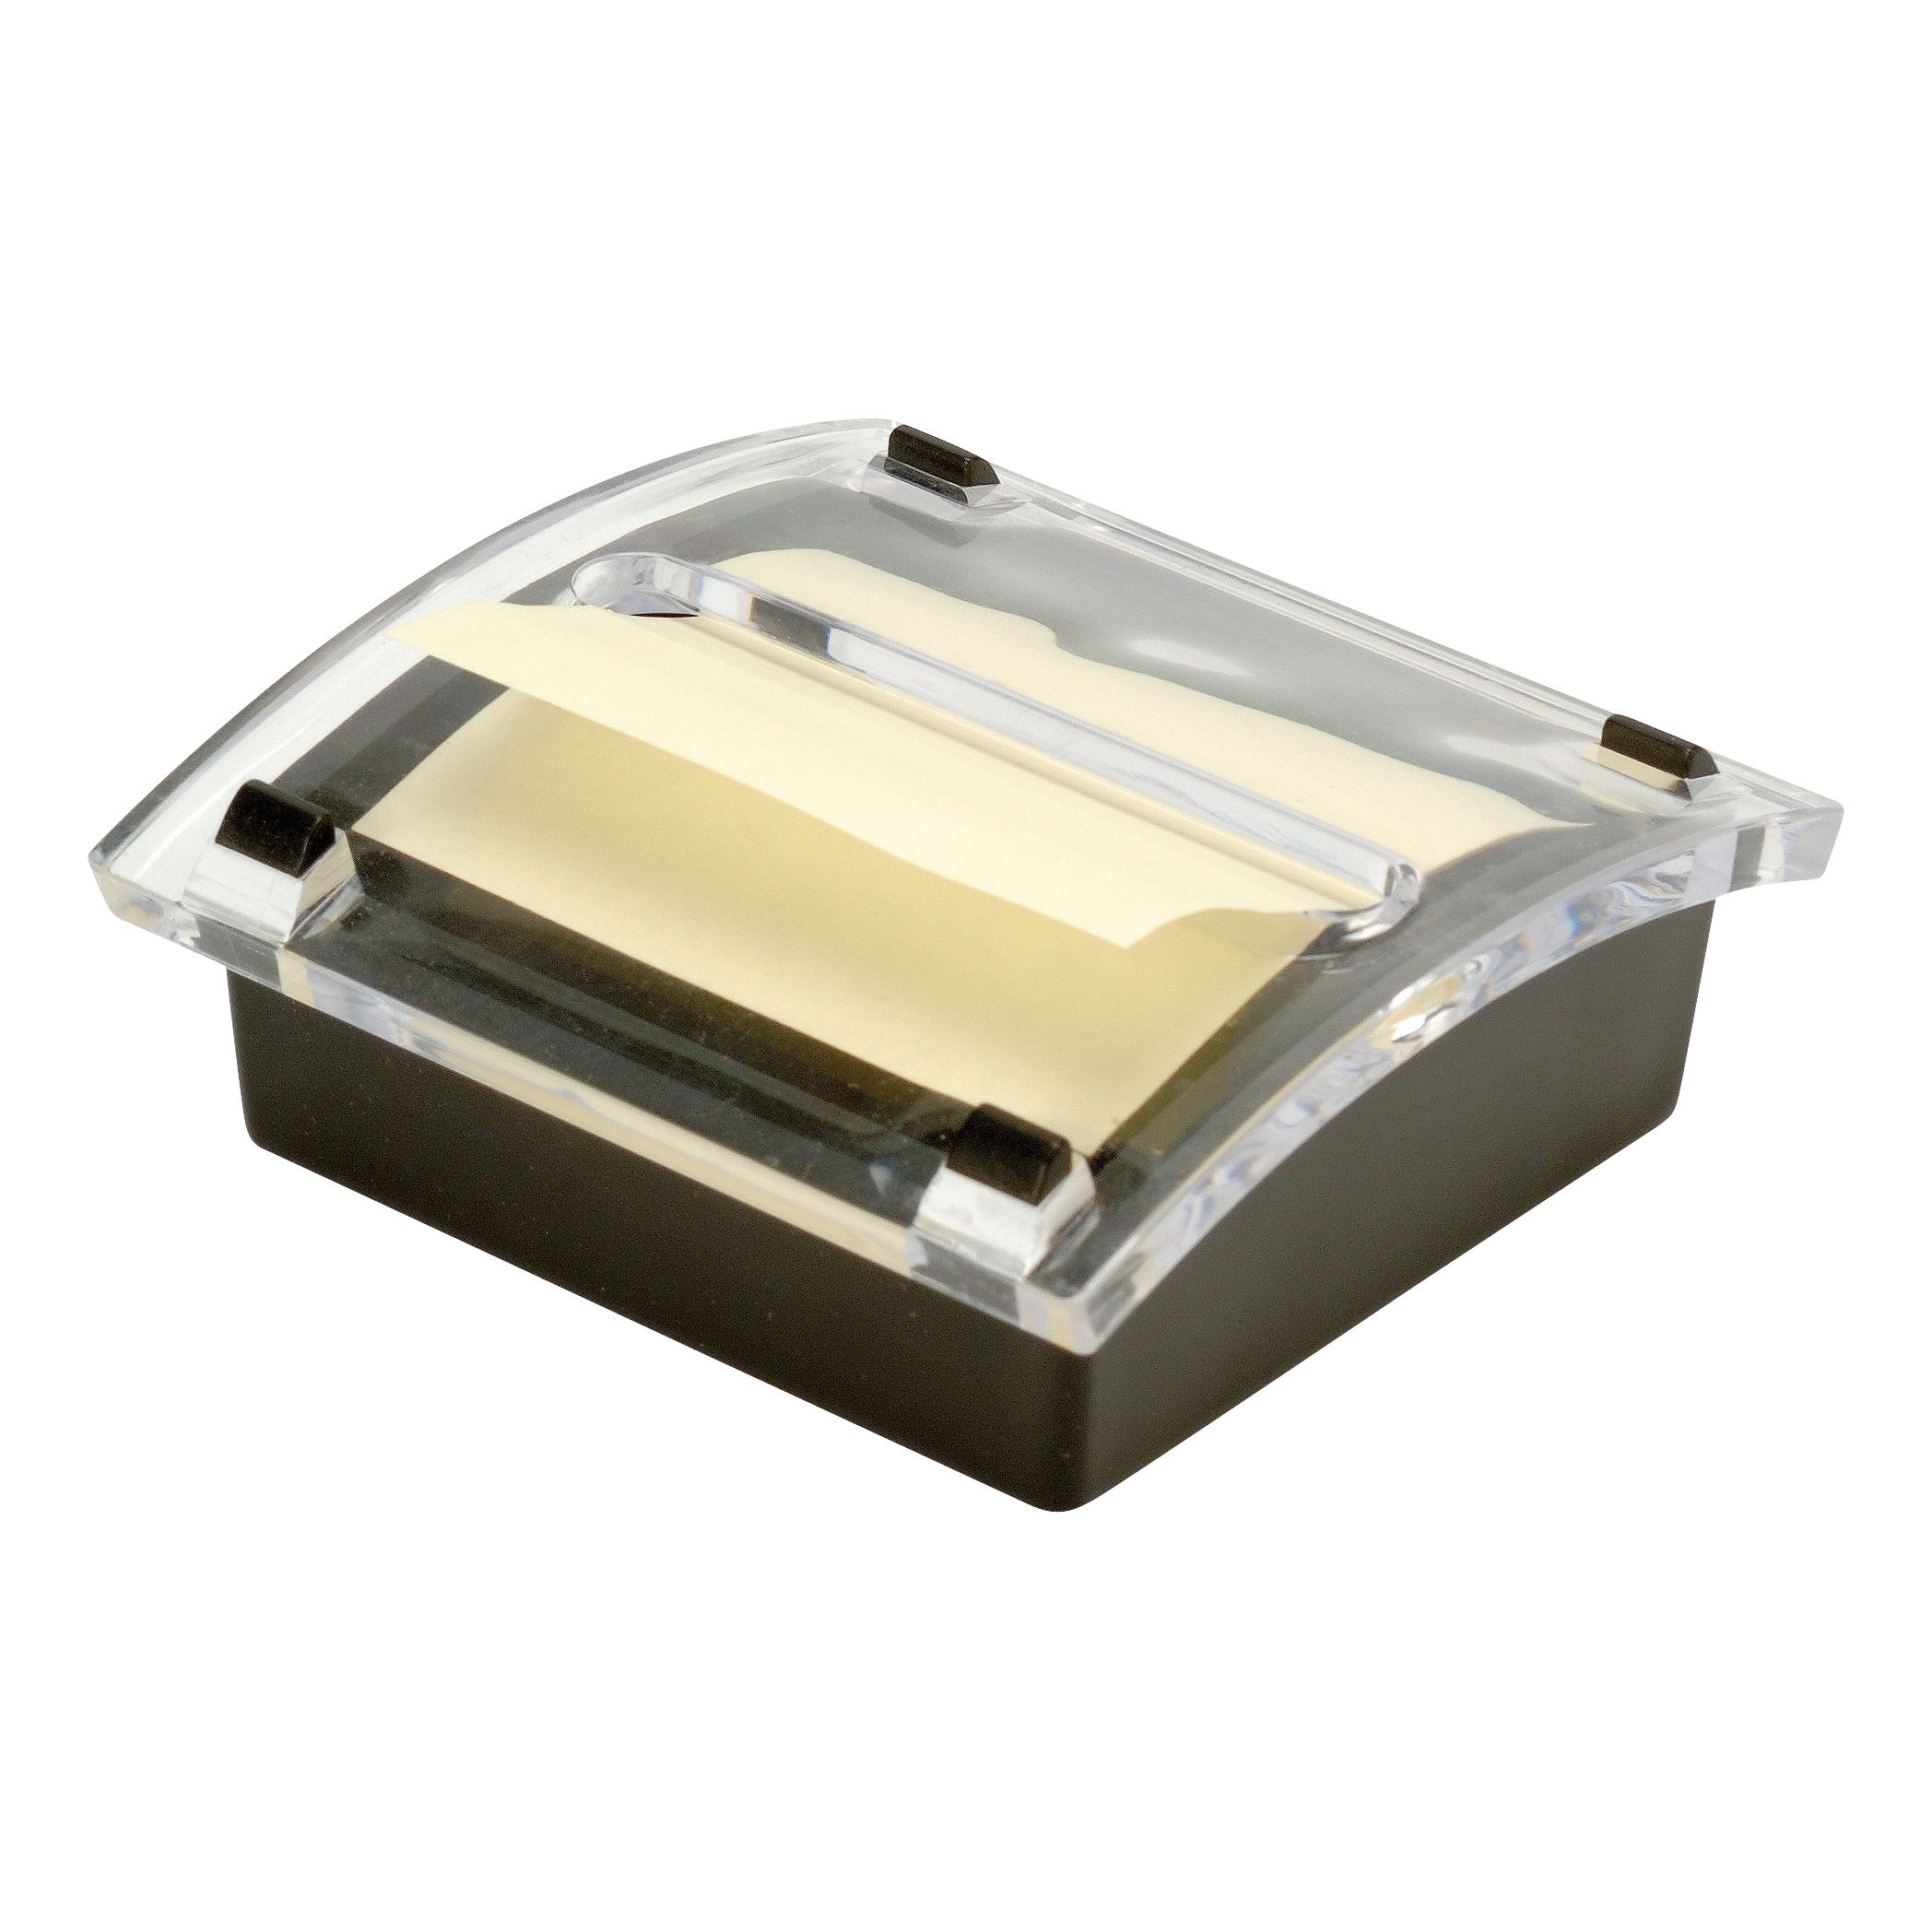 Z Notes 5 Star Office Re-Move Concertina Note Dispenser Acrylic-topped with FREE Pad for 76x76mm Notes